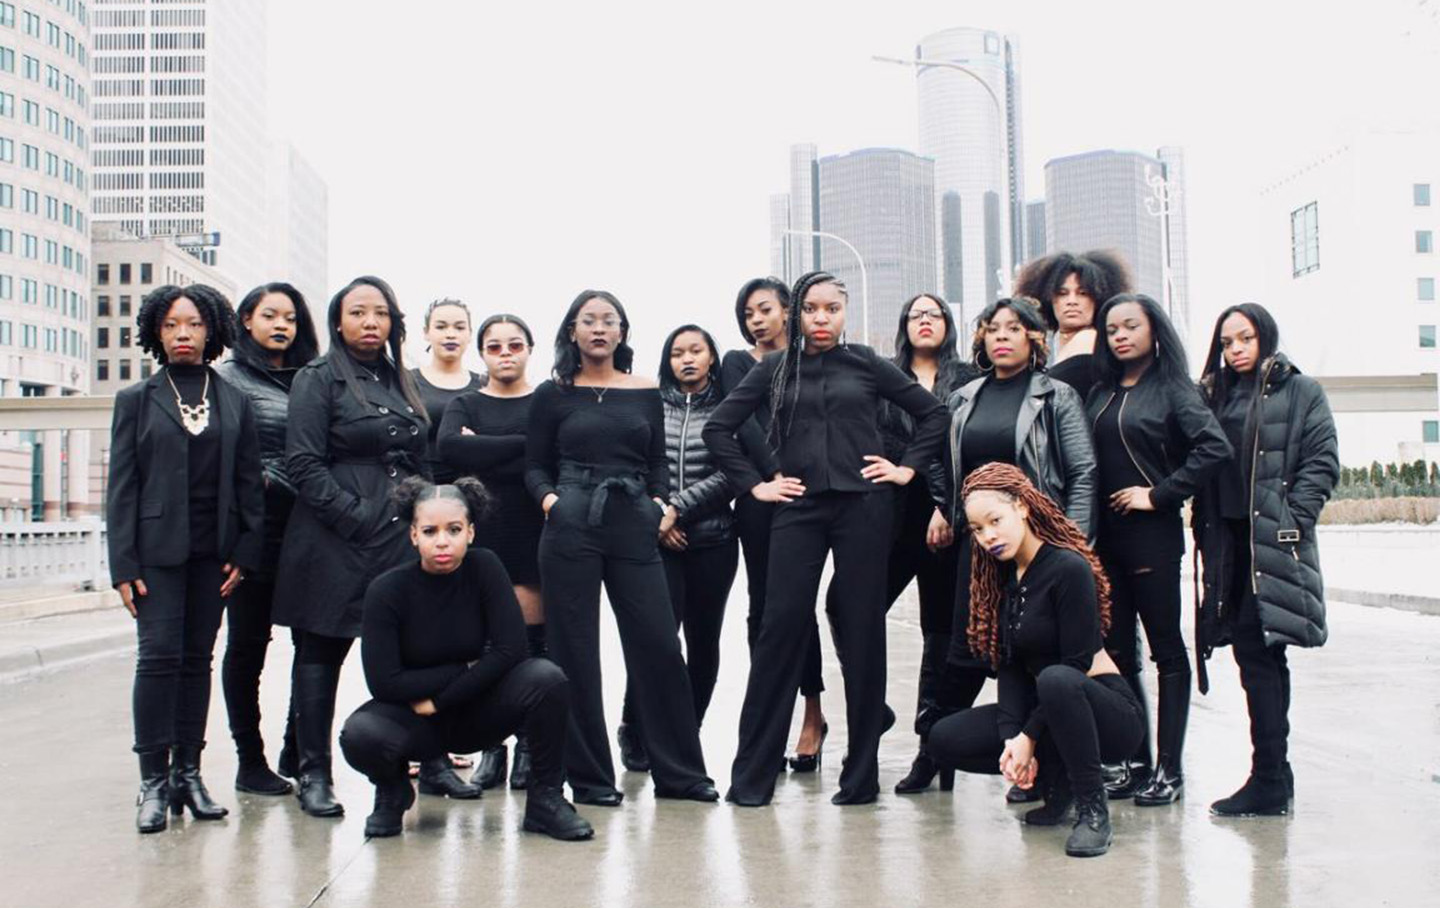 It's Young Black Women's Turn in Michigan